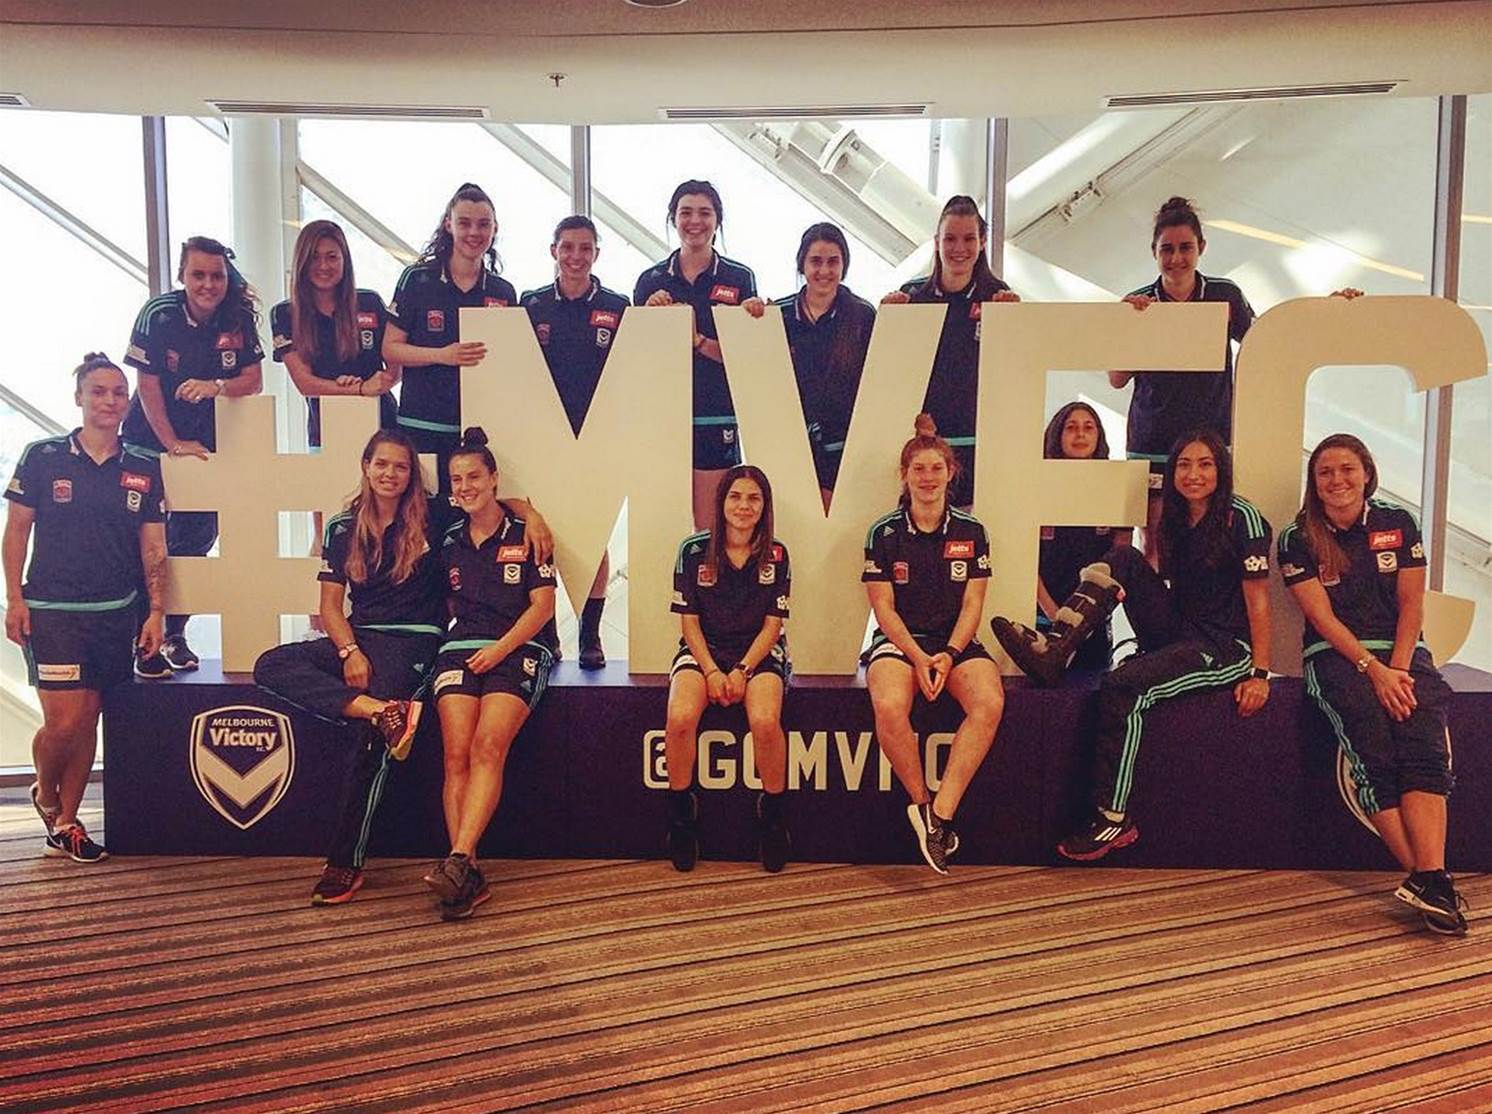 Melbourne Victory squad revealed at Fan Day